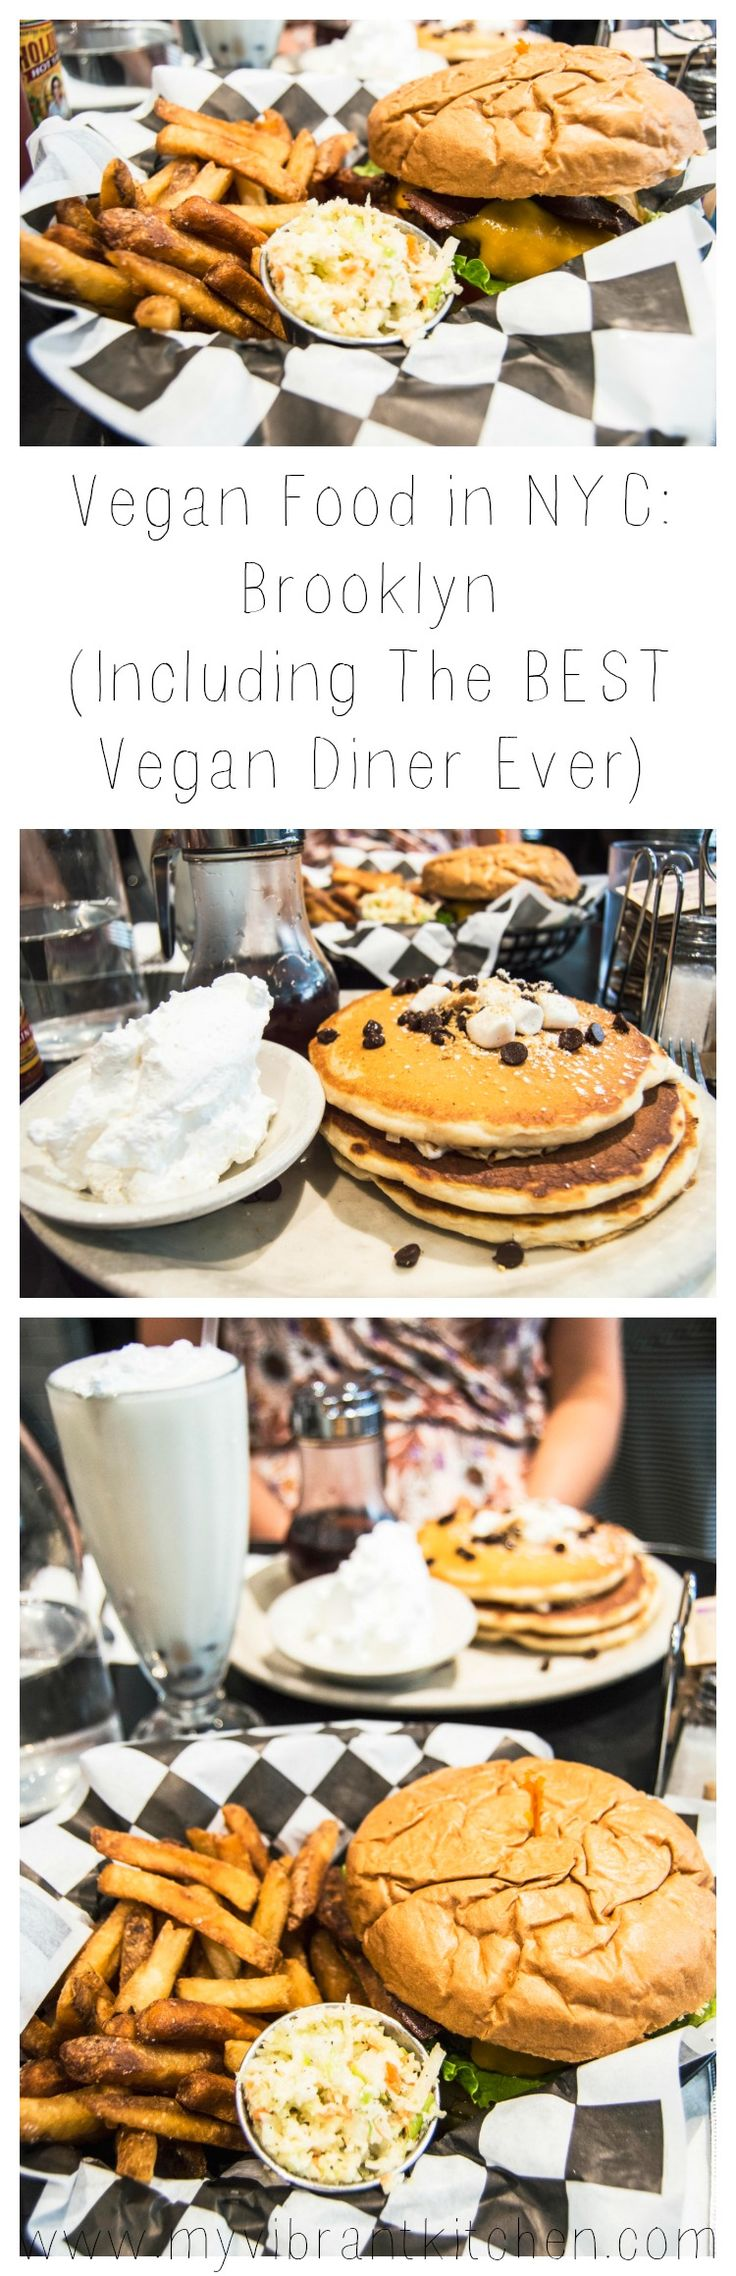 My Vibrant Kitchen | Vegan Food in New York City: Manhattan, Including BEST Diner Ever | myvibrantkitchen.com